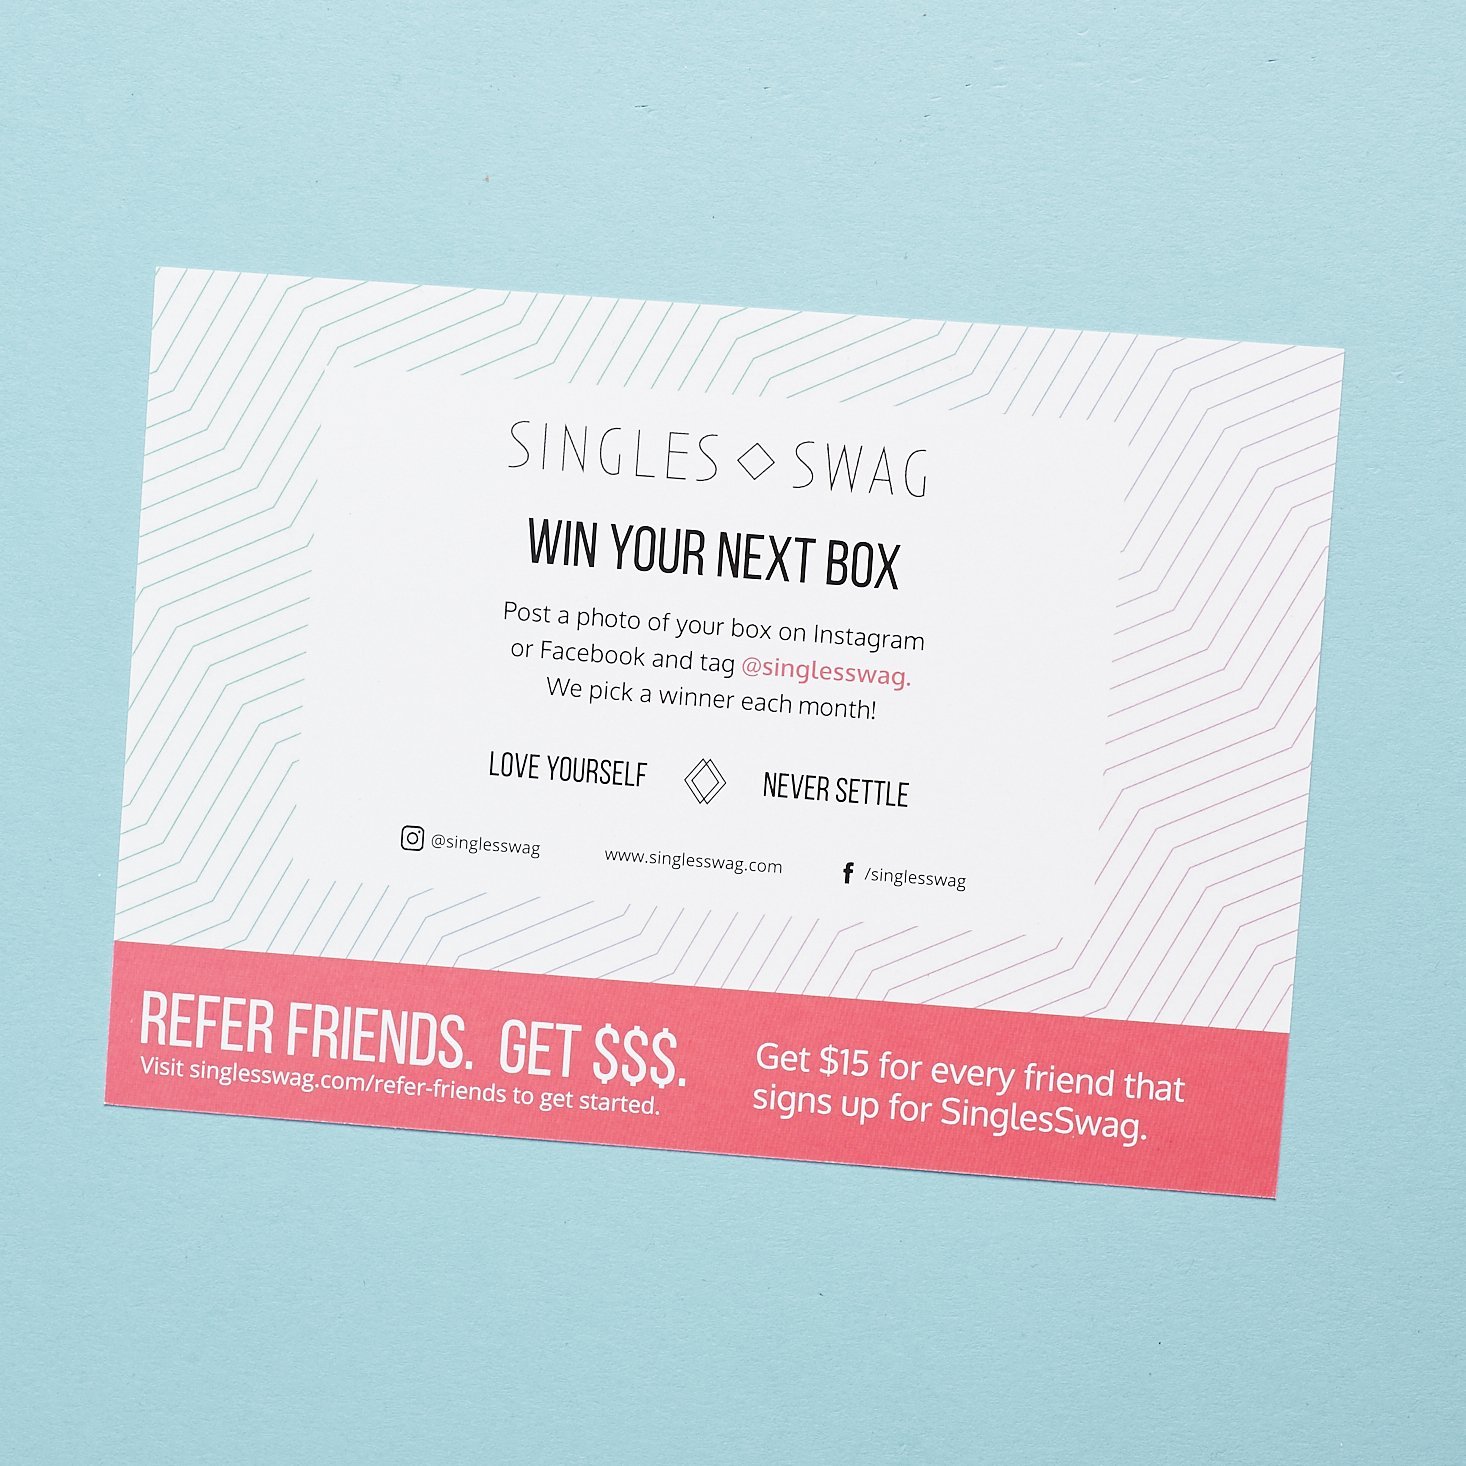 instructions on how to win your next box on other side of info card